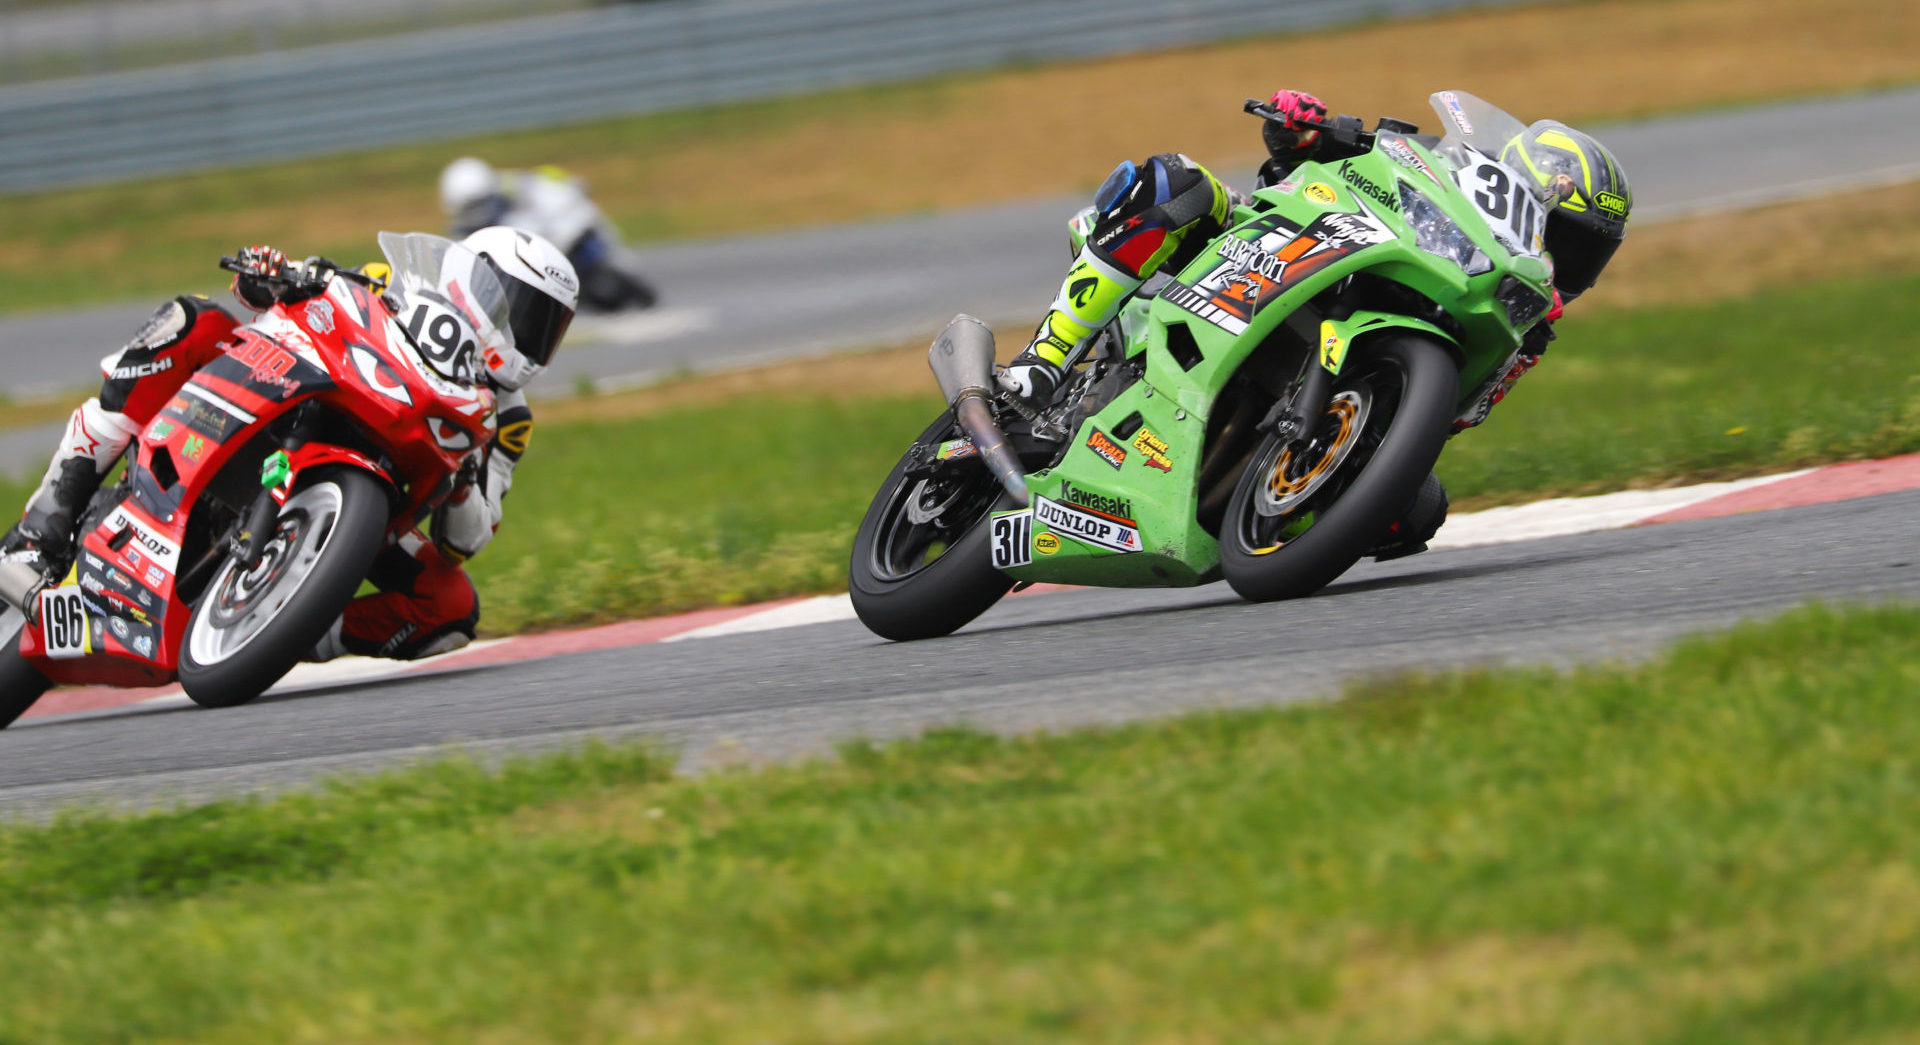 Kayla Yaakov (311) leads Gus Rodio (196) during the ASRA Moto3 National at New Jersey Motorsports Park. Photo by etechphoto.com, courtesy ASRA.